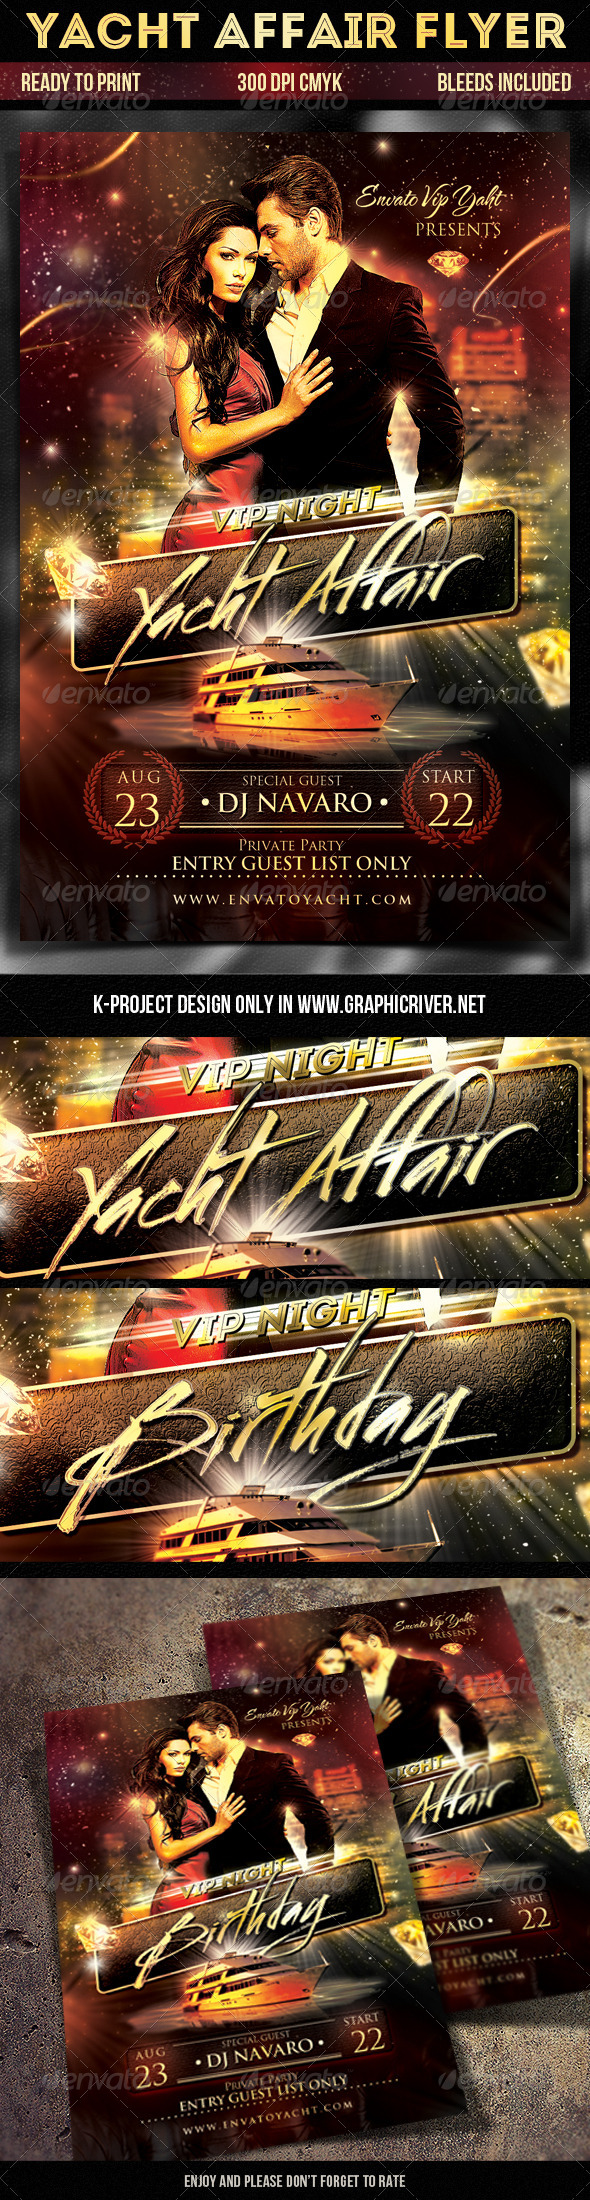 GraphicRiver Yacht Affair Flyer 8373744